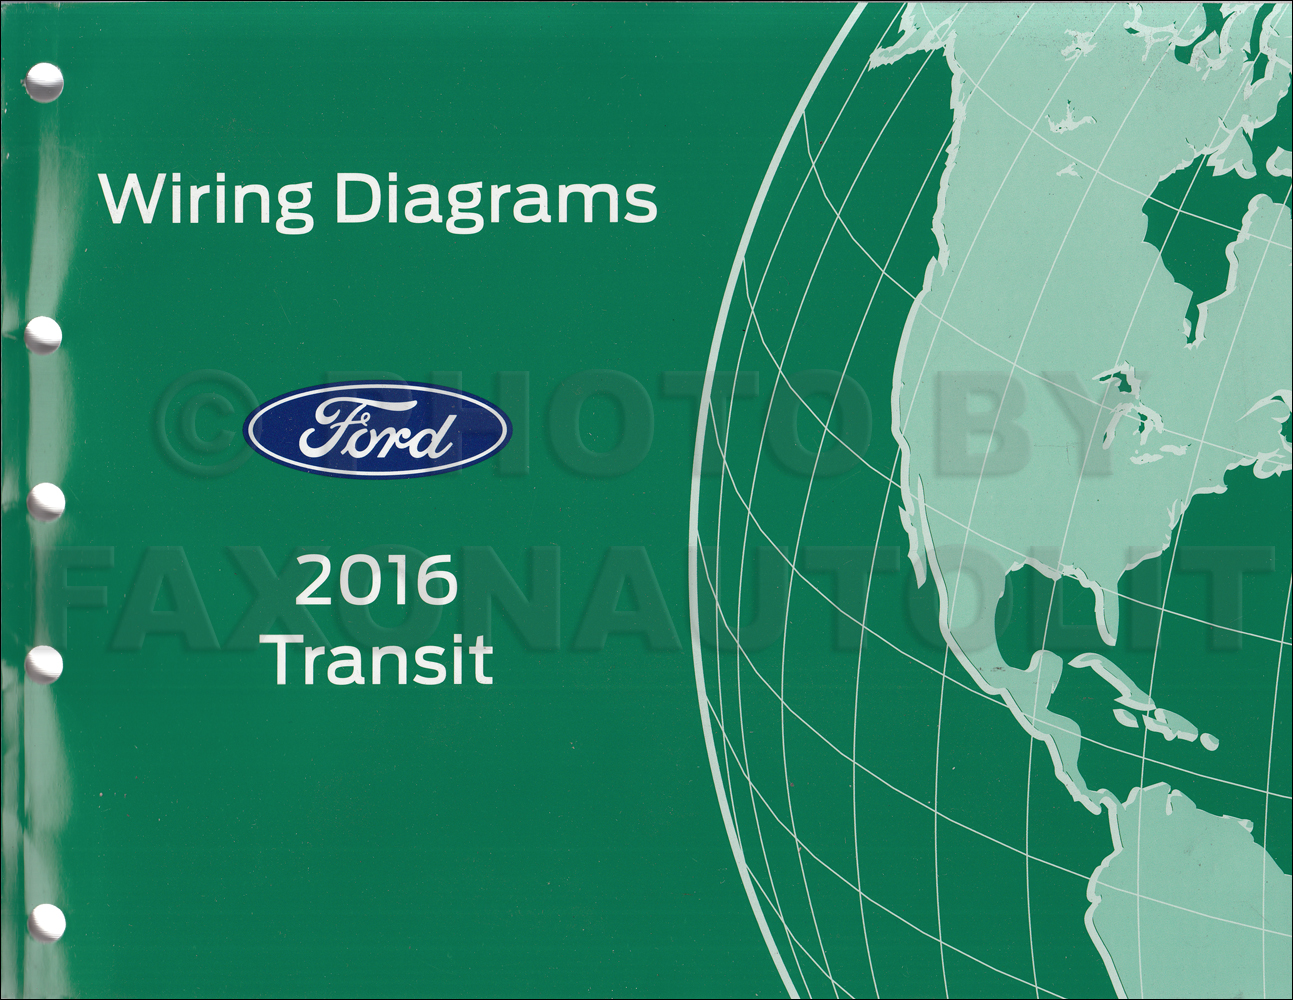 2016 Ford Transit Stereo Wiring Diagram - DIY Enthusiasts Wiring ...